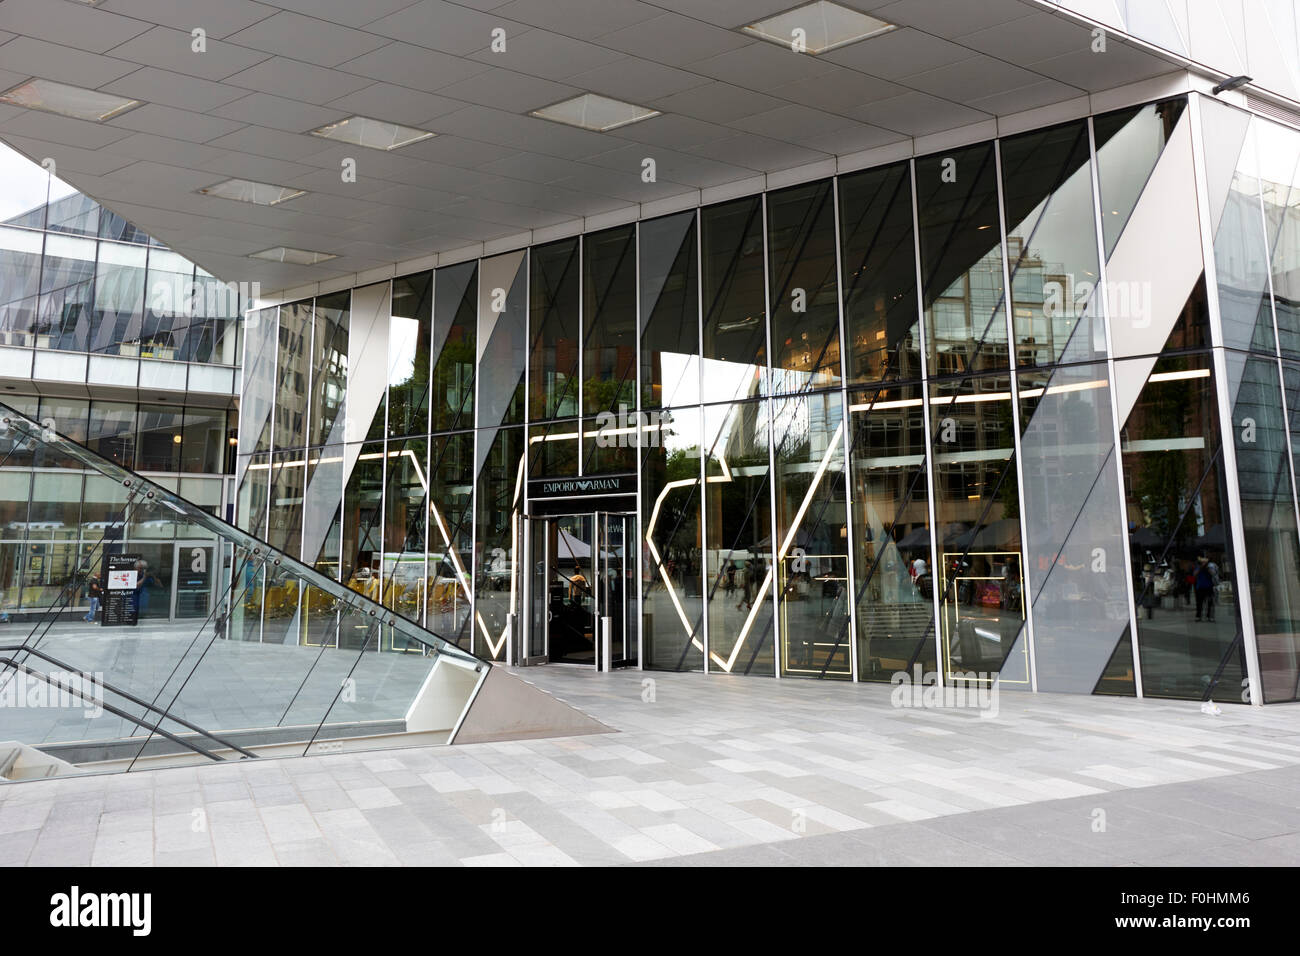 emporio armani fashion store in the avenue building spinningfields Manchester England UK - Stock Image